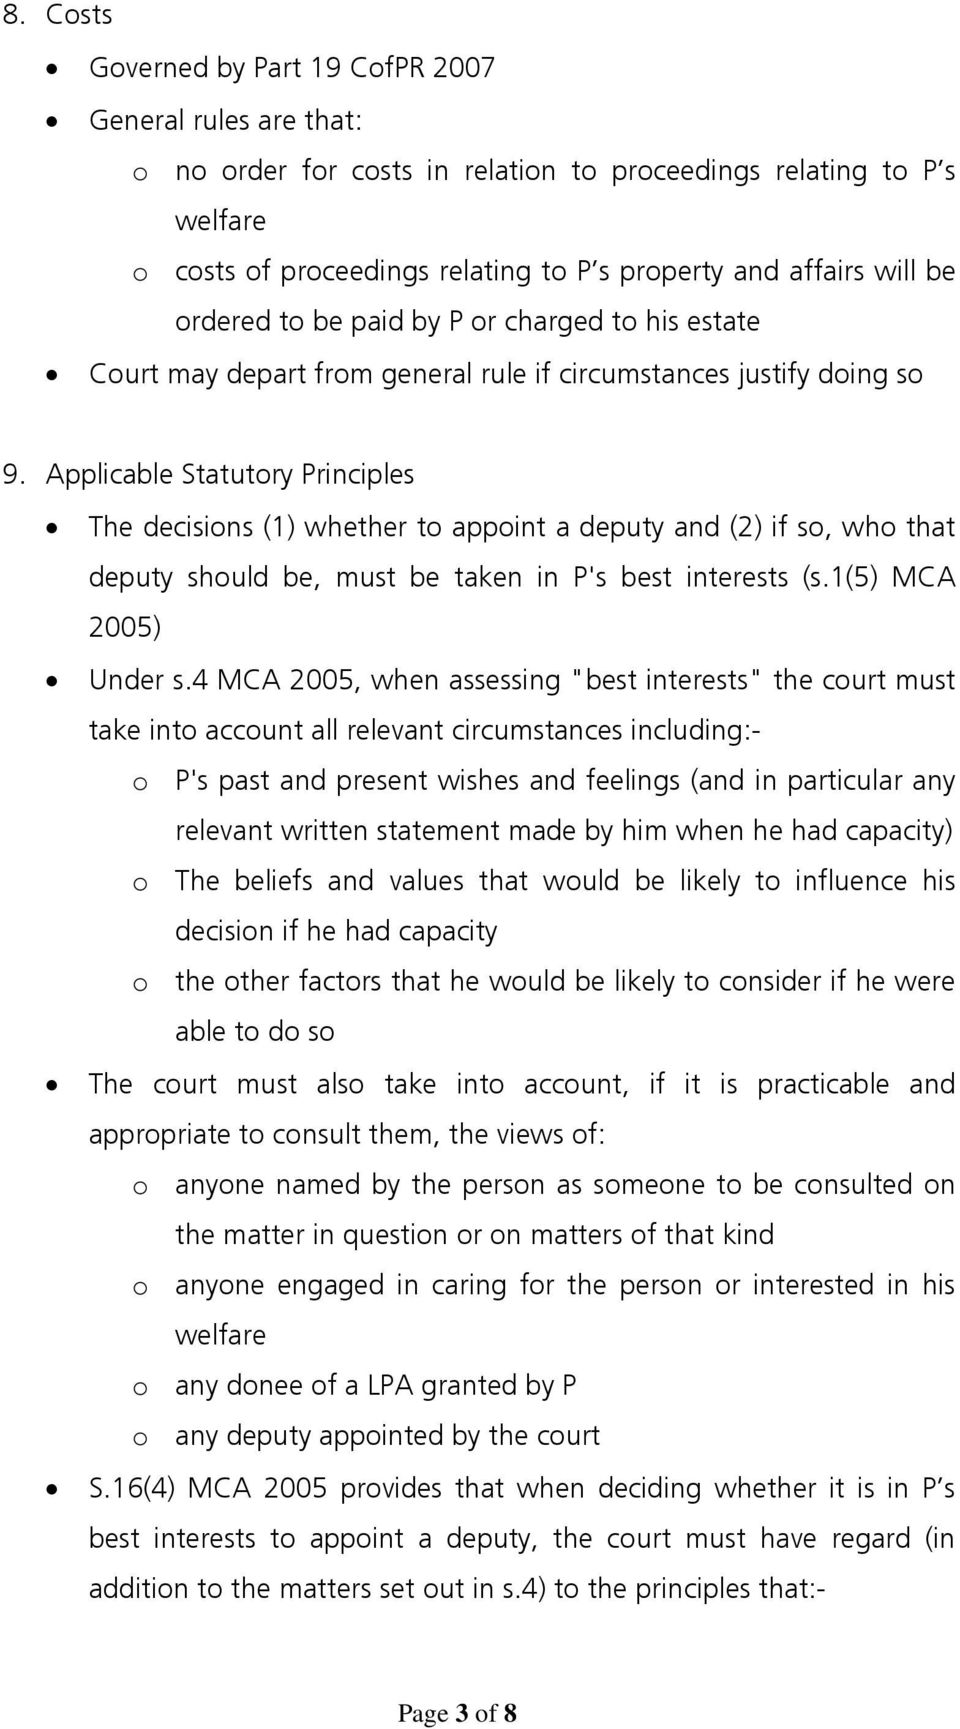 Applicable Statutory Principles The decisions (1) whether to appoint a deputy and (2) if so, who that deputy should be, must be taken in P's best interests (s.1(5) MCA 2005) Under s.